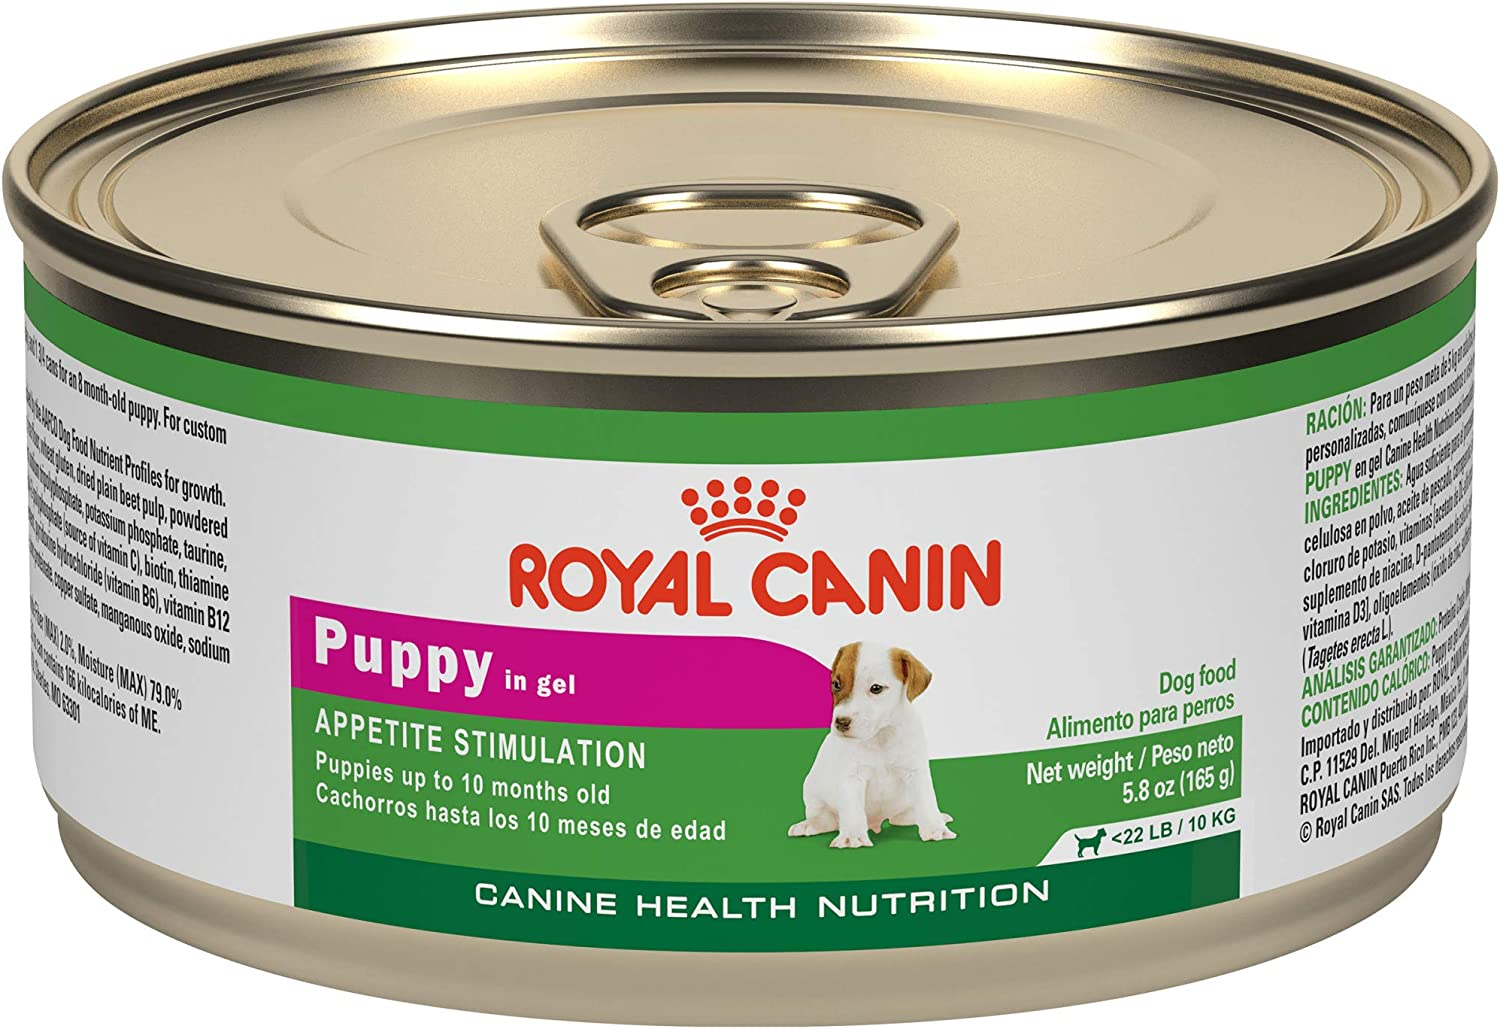 Royal Canin Canine Health Nutrition Puppy, Loaf in Sauce